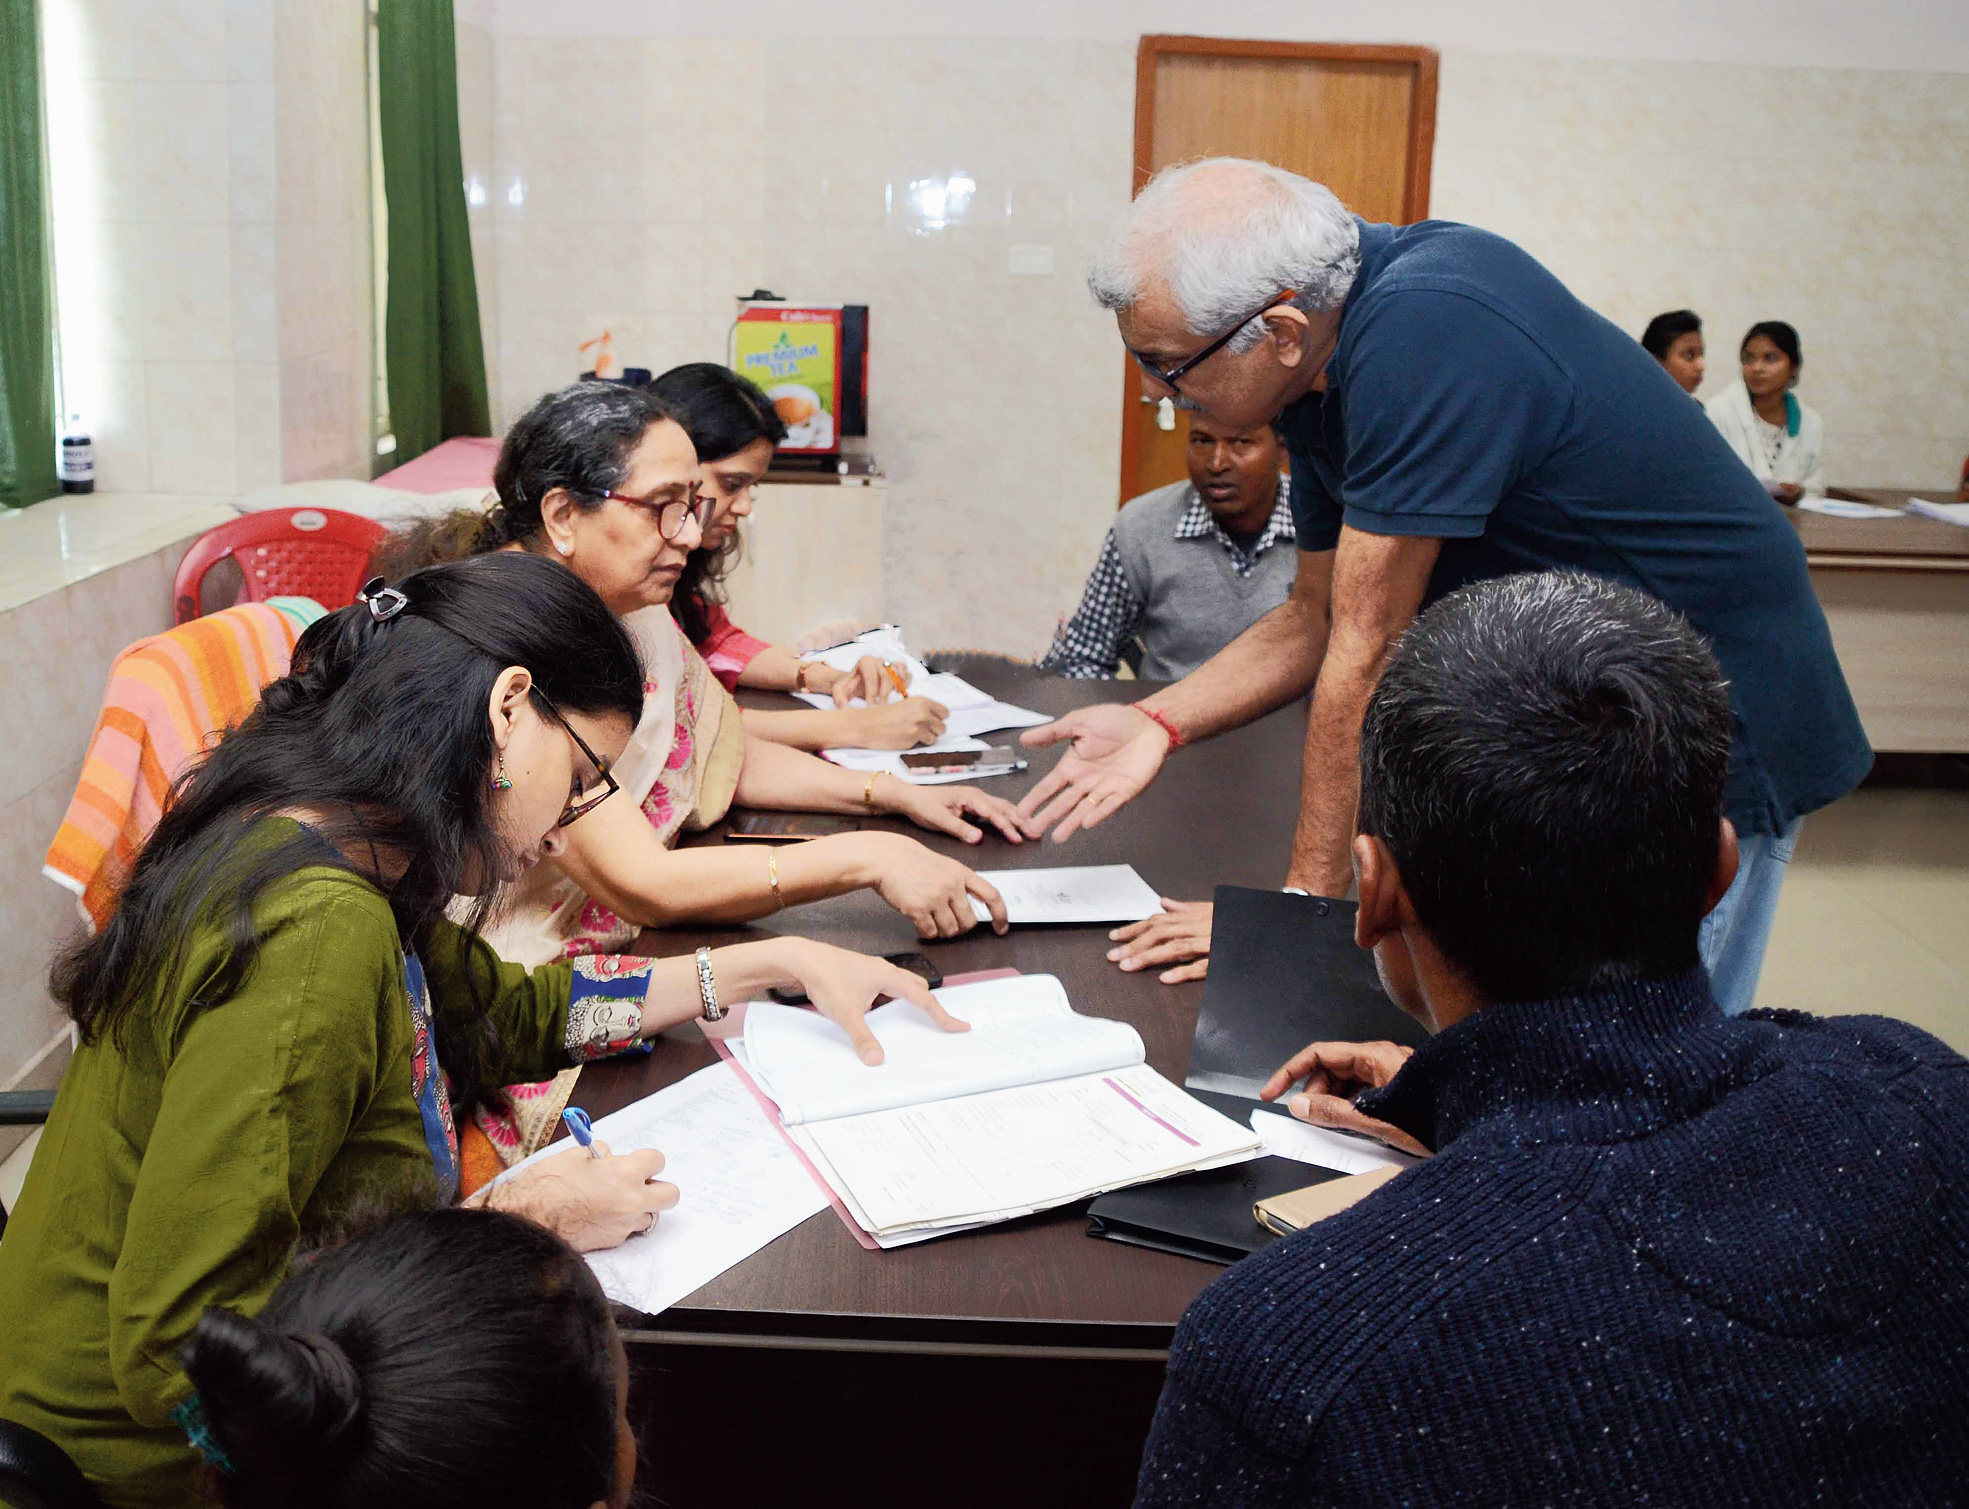 Safety first: Mamta Manglani (seated, second from left) with others at the medical camp at Ranchi Sadar Hospital on Friday.